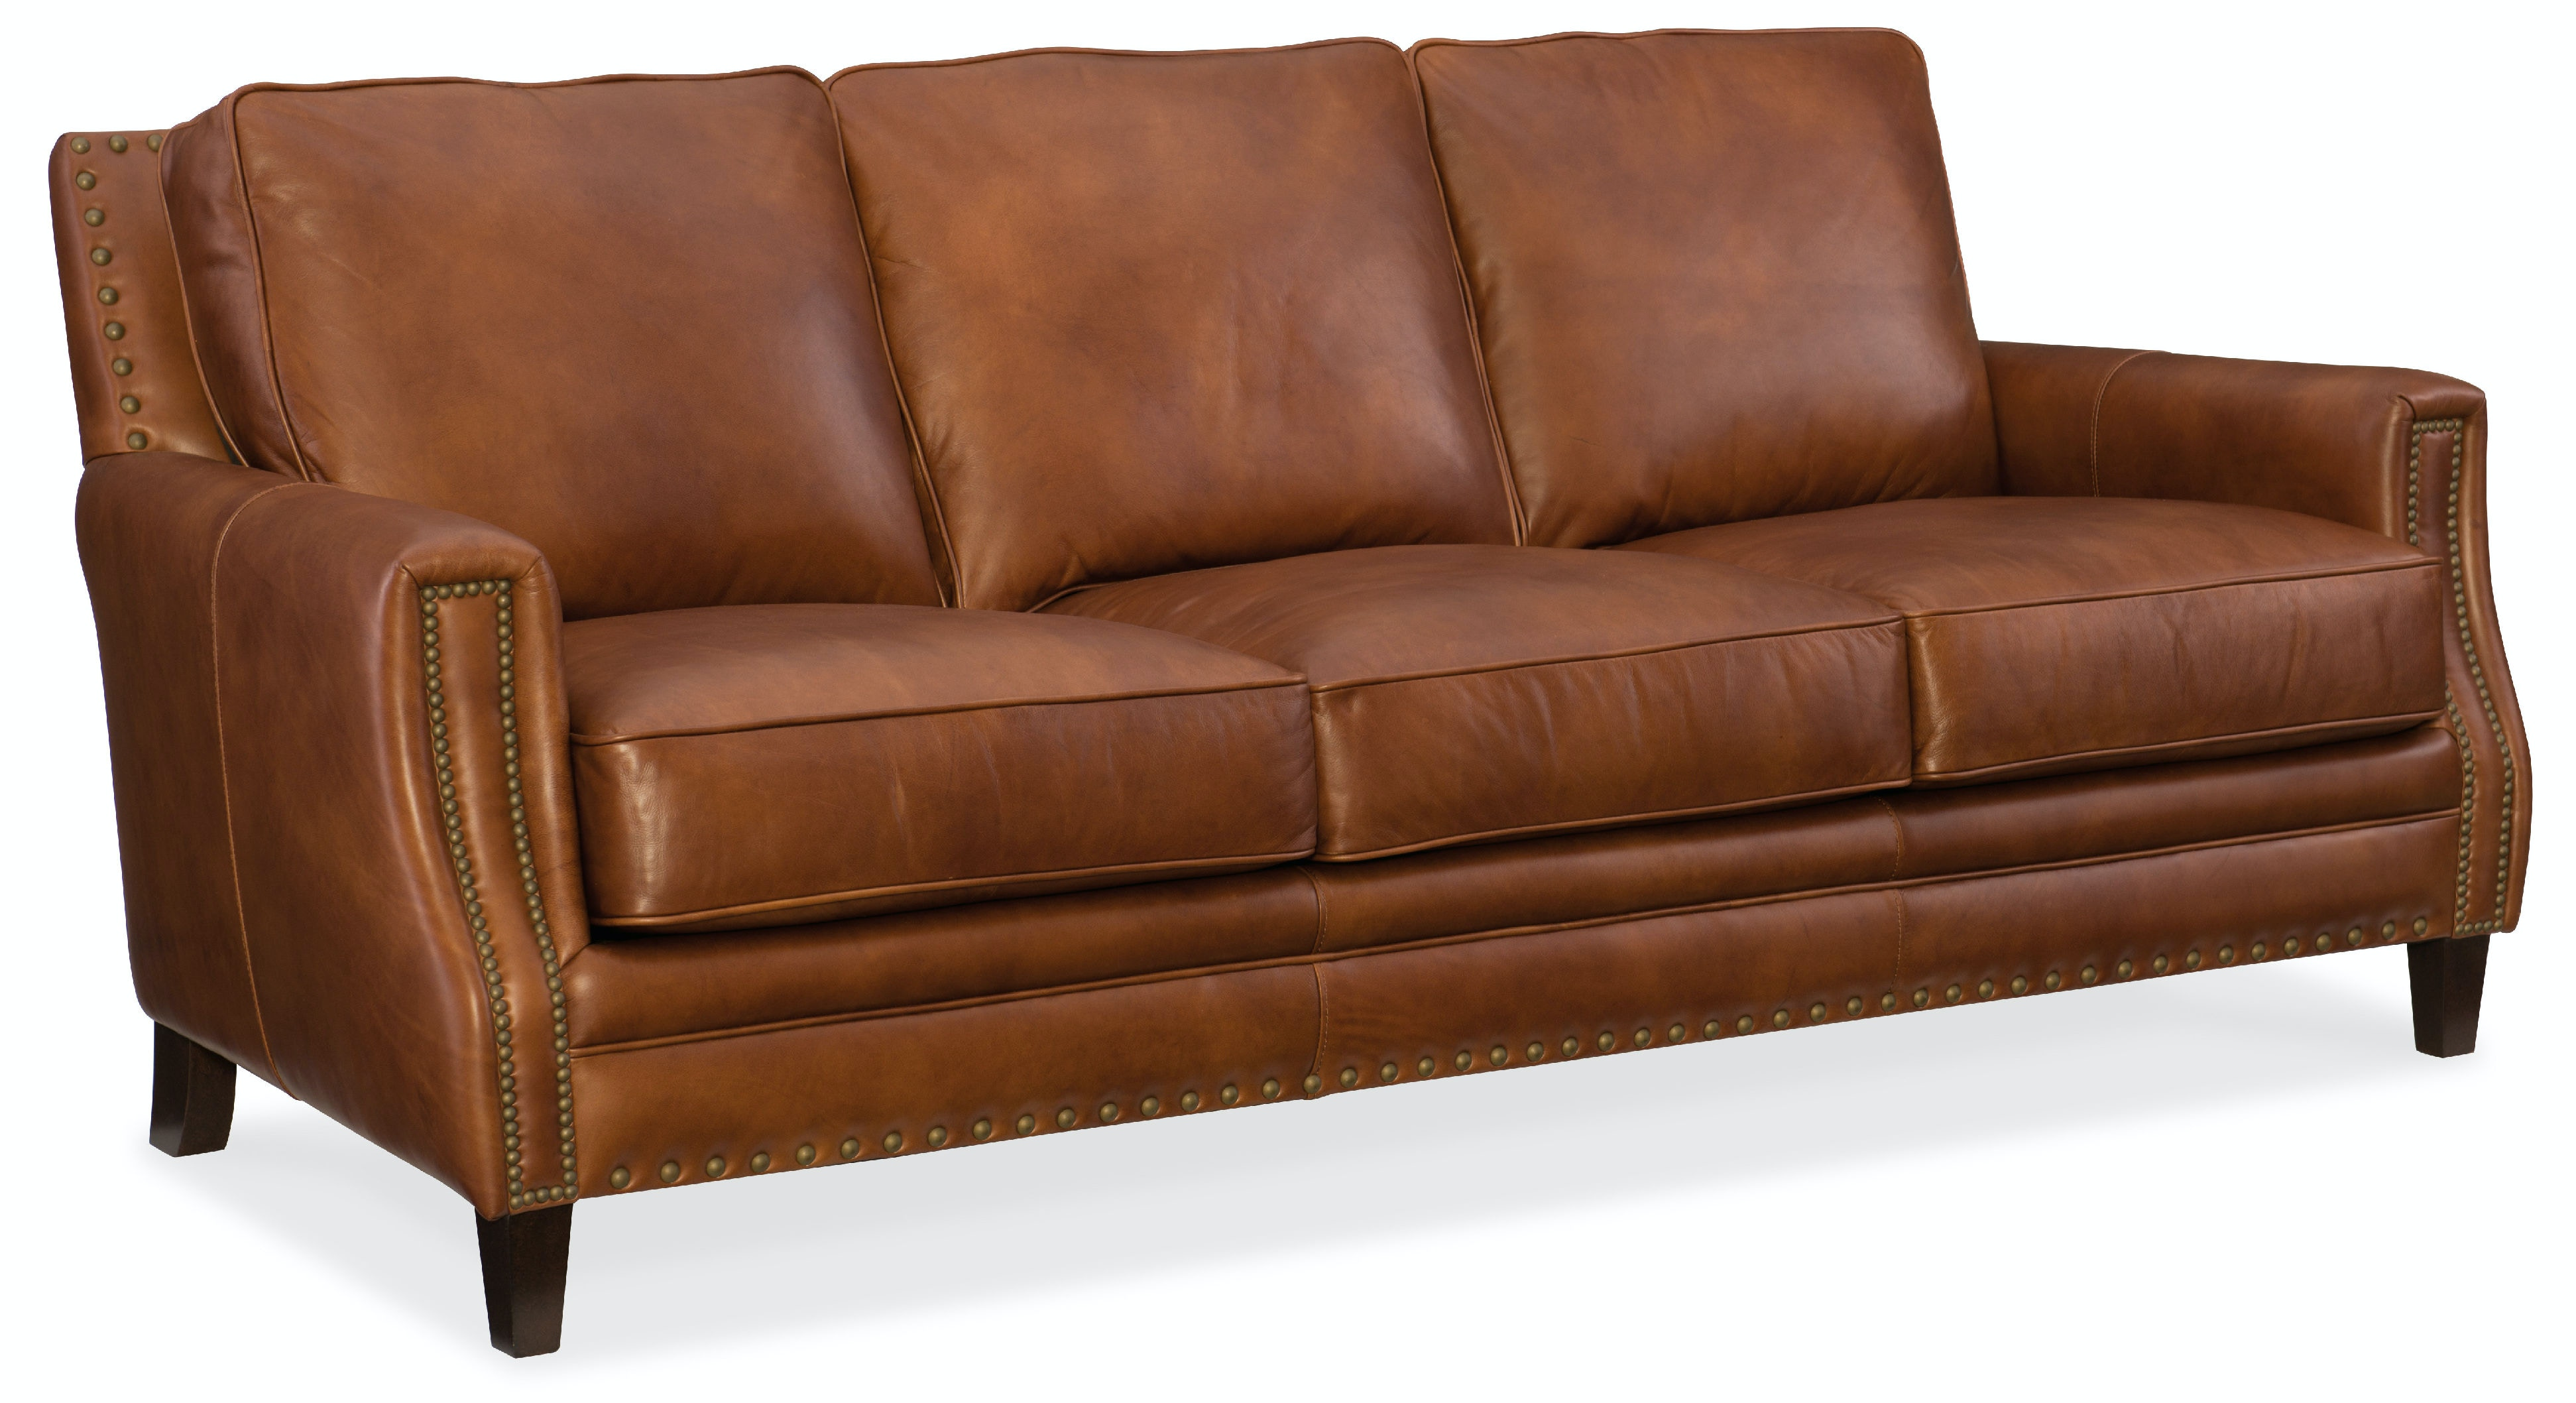 Hooker Furniture Living Room Exton Stationary Sofa SS387 03 087 At Meg Brown  Home Furnishings